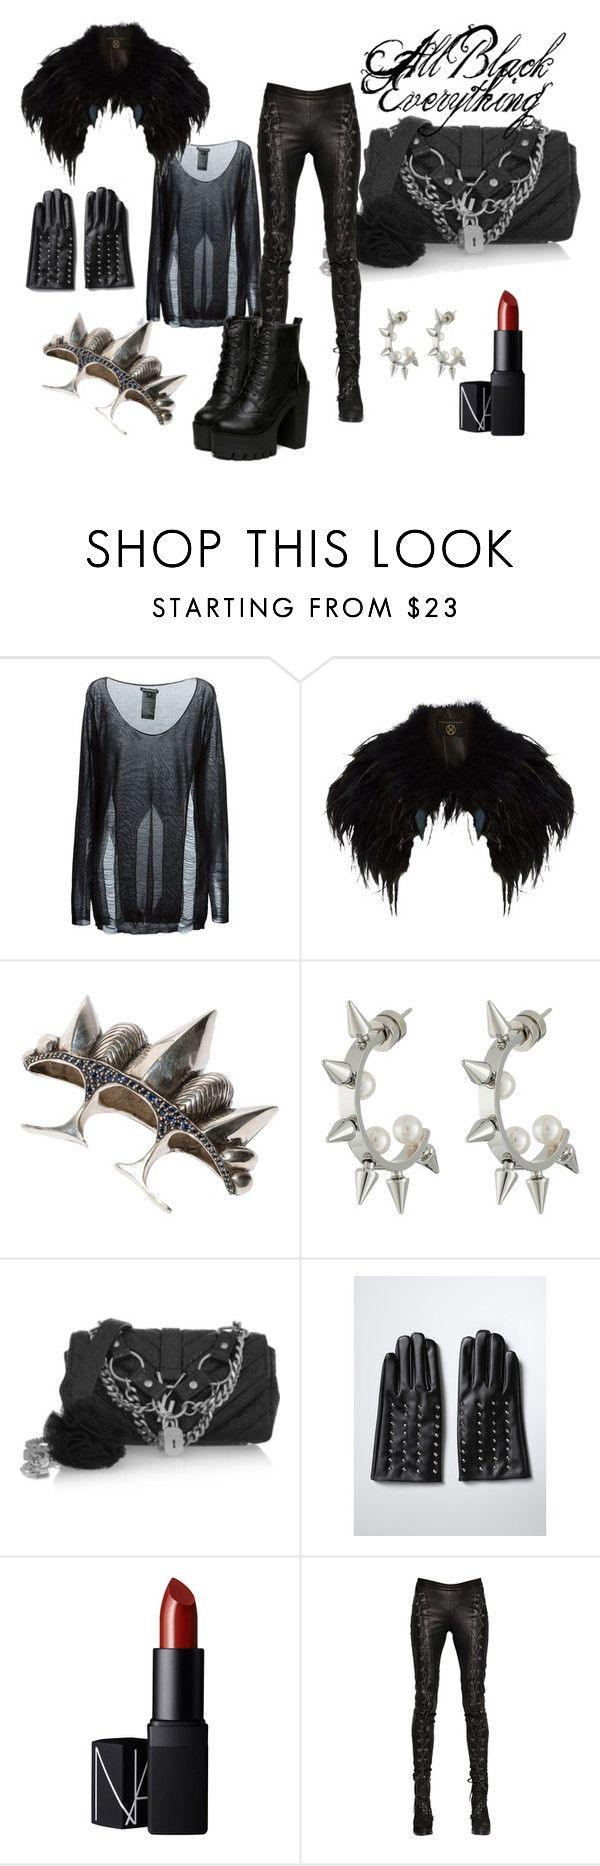 Two Spooky-Chic Looks For Halloween